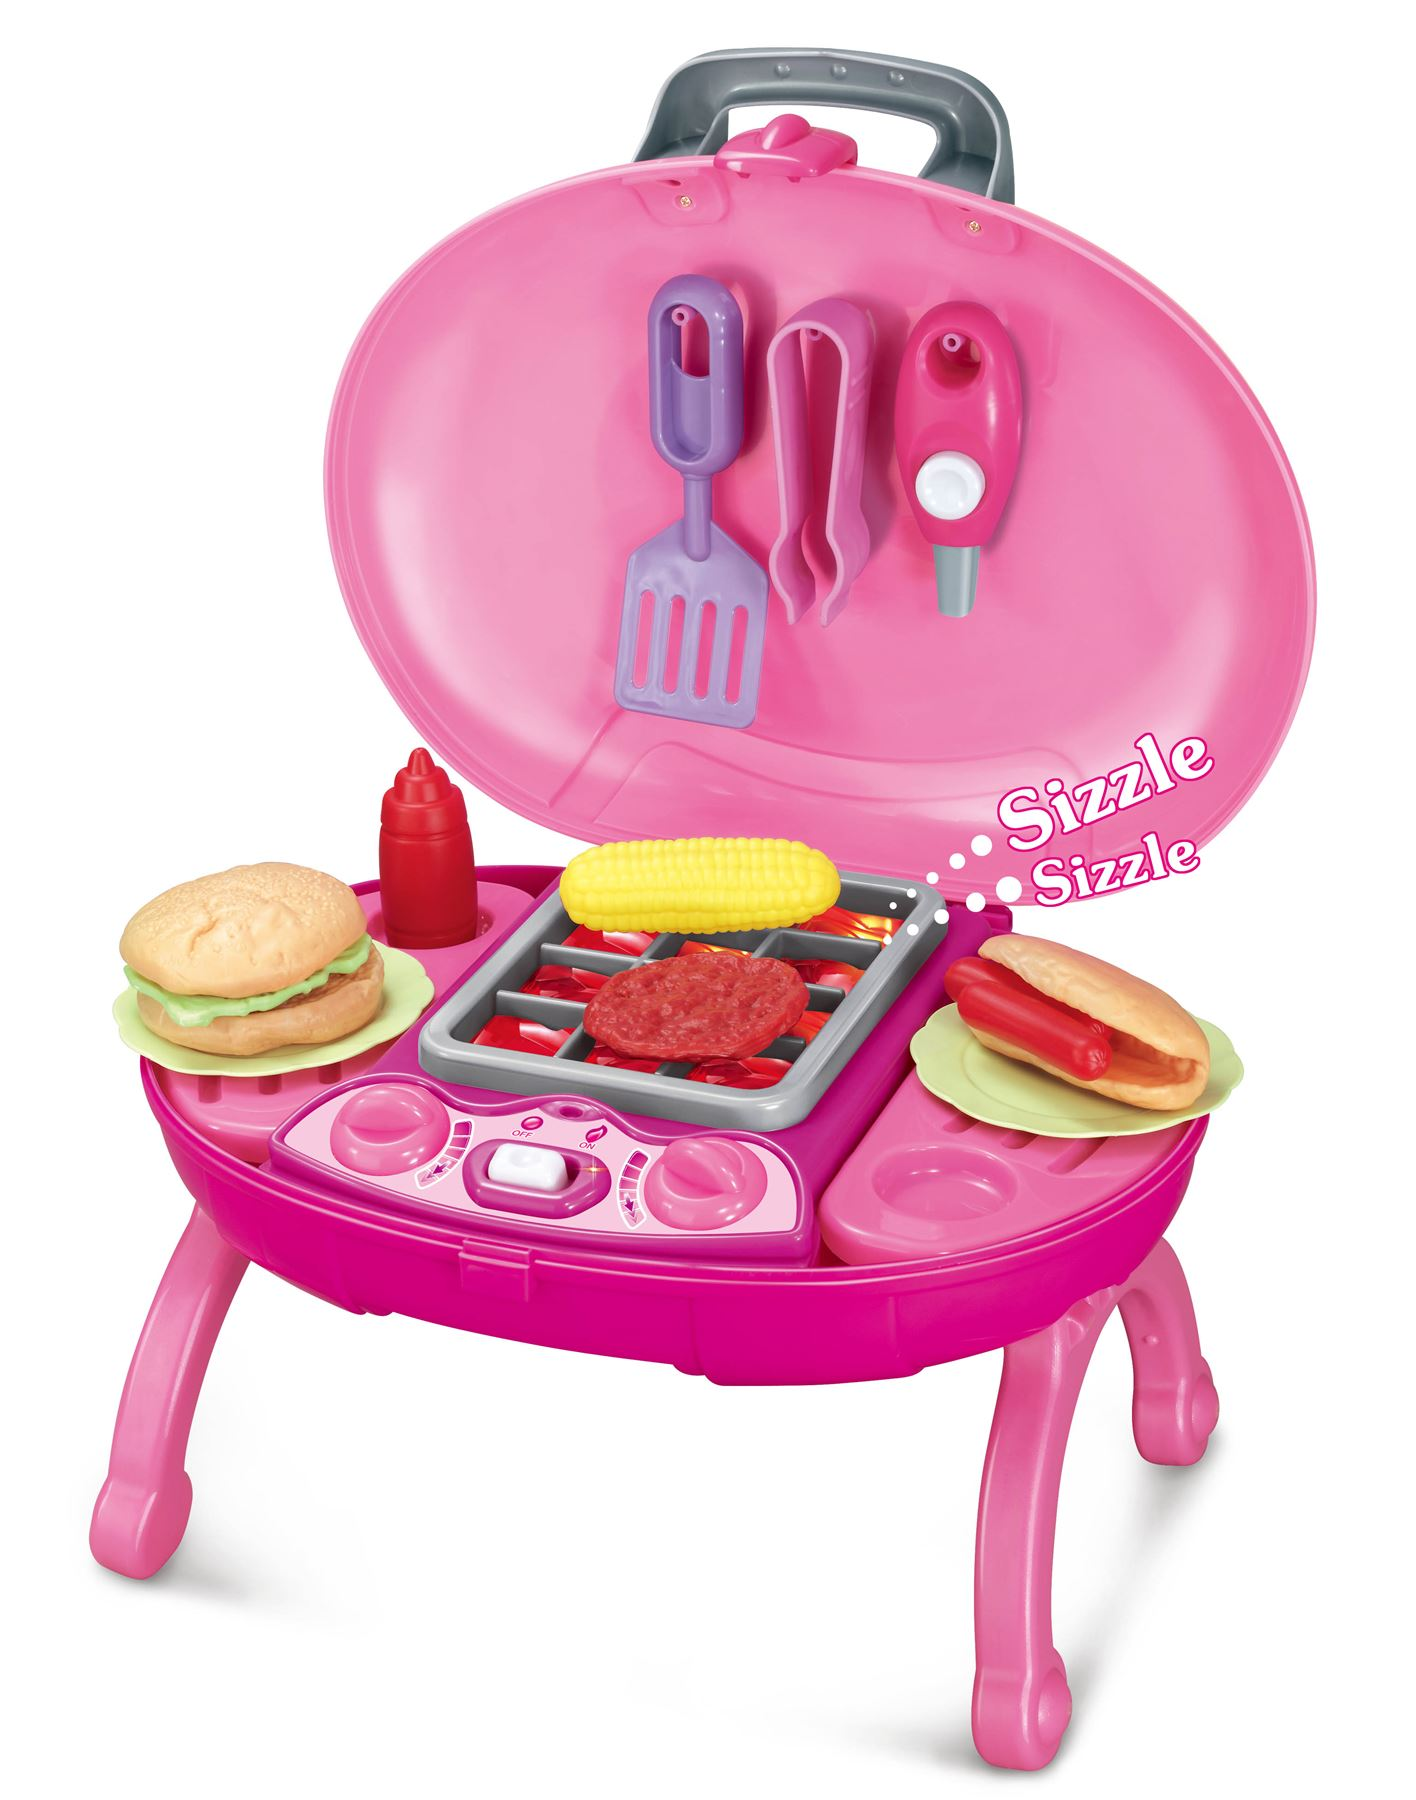 Play Food Set Toys : Electronic lights and sounds pretend play bbq barbecue